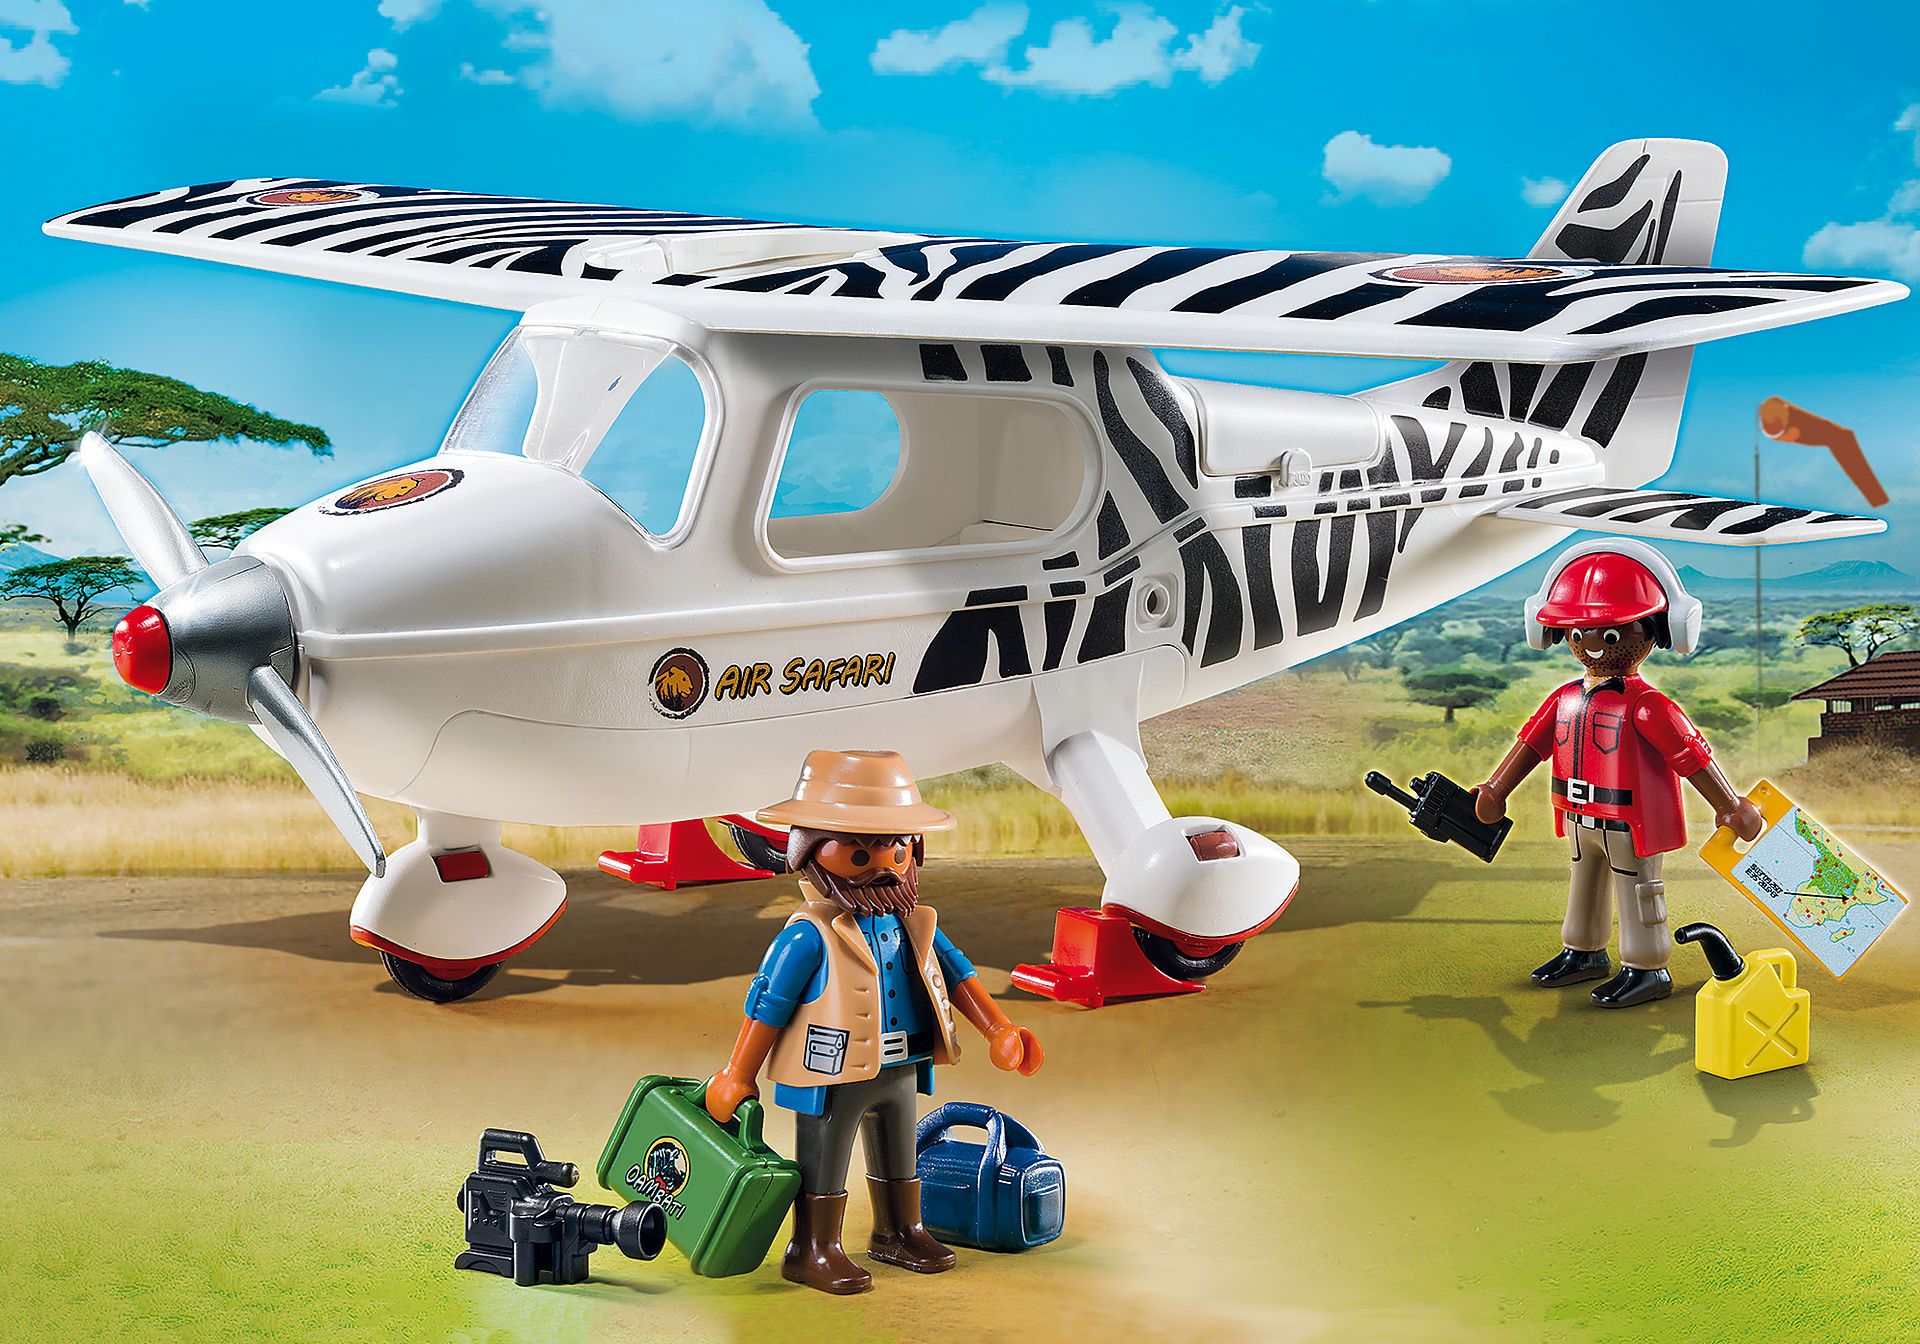 http://media.playmobil.com/i/playmobil/6938_product_detail/Samolot safari